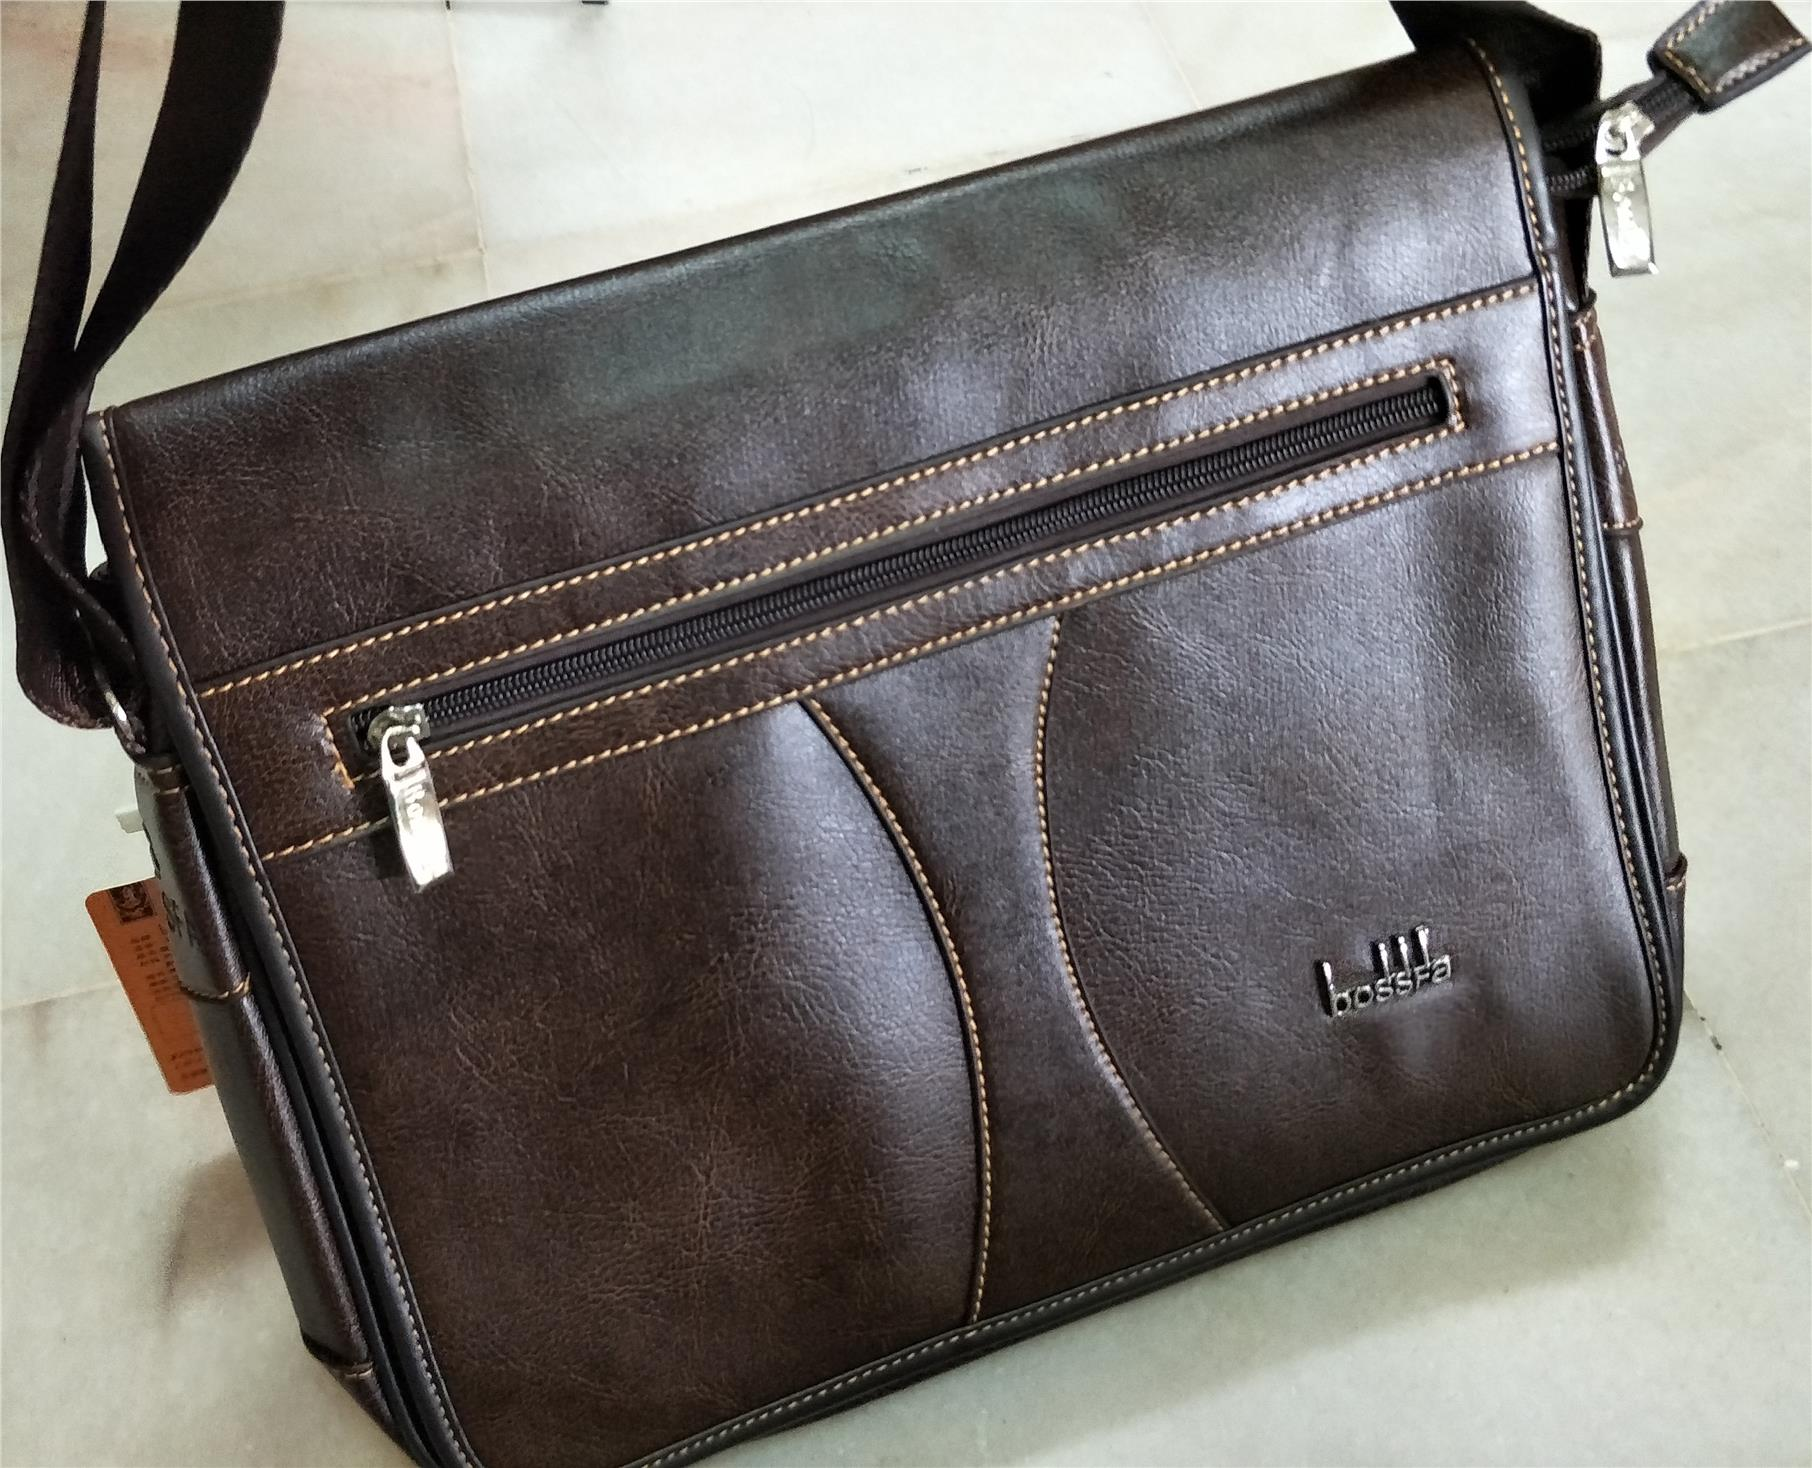 AWESOME UNISEX SLING LAPTOP AND DOCUMENT BAG